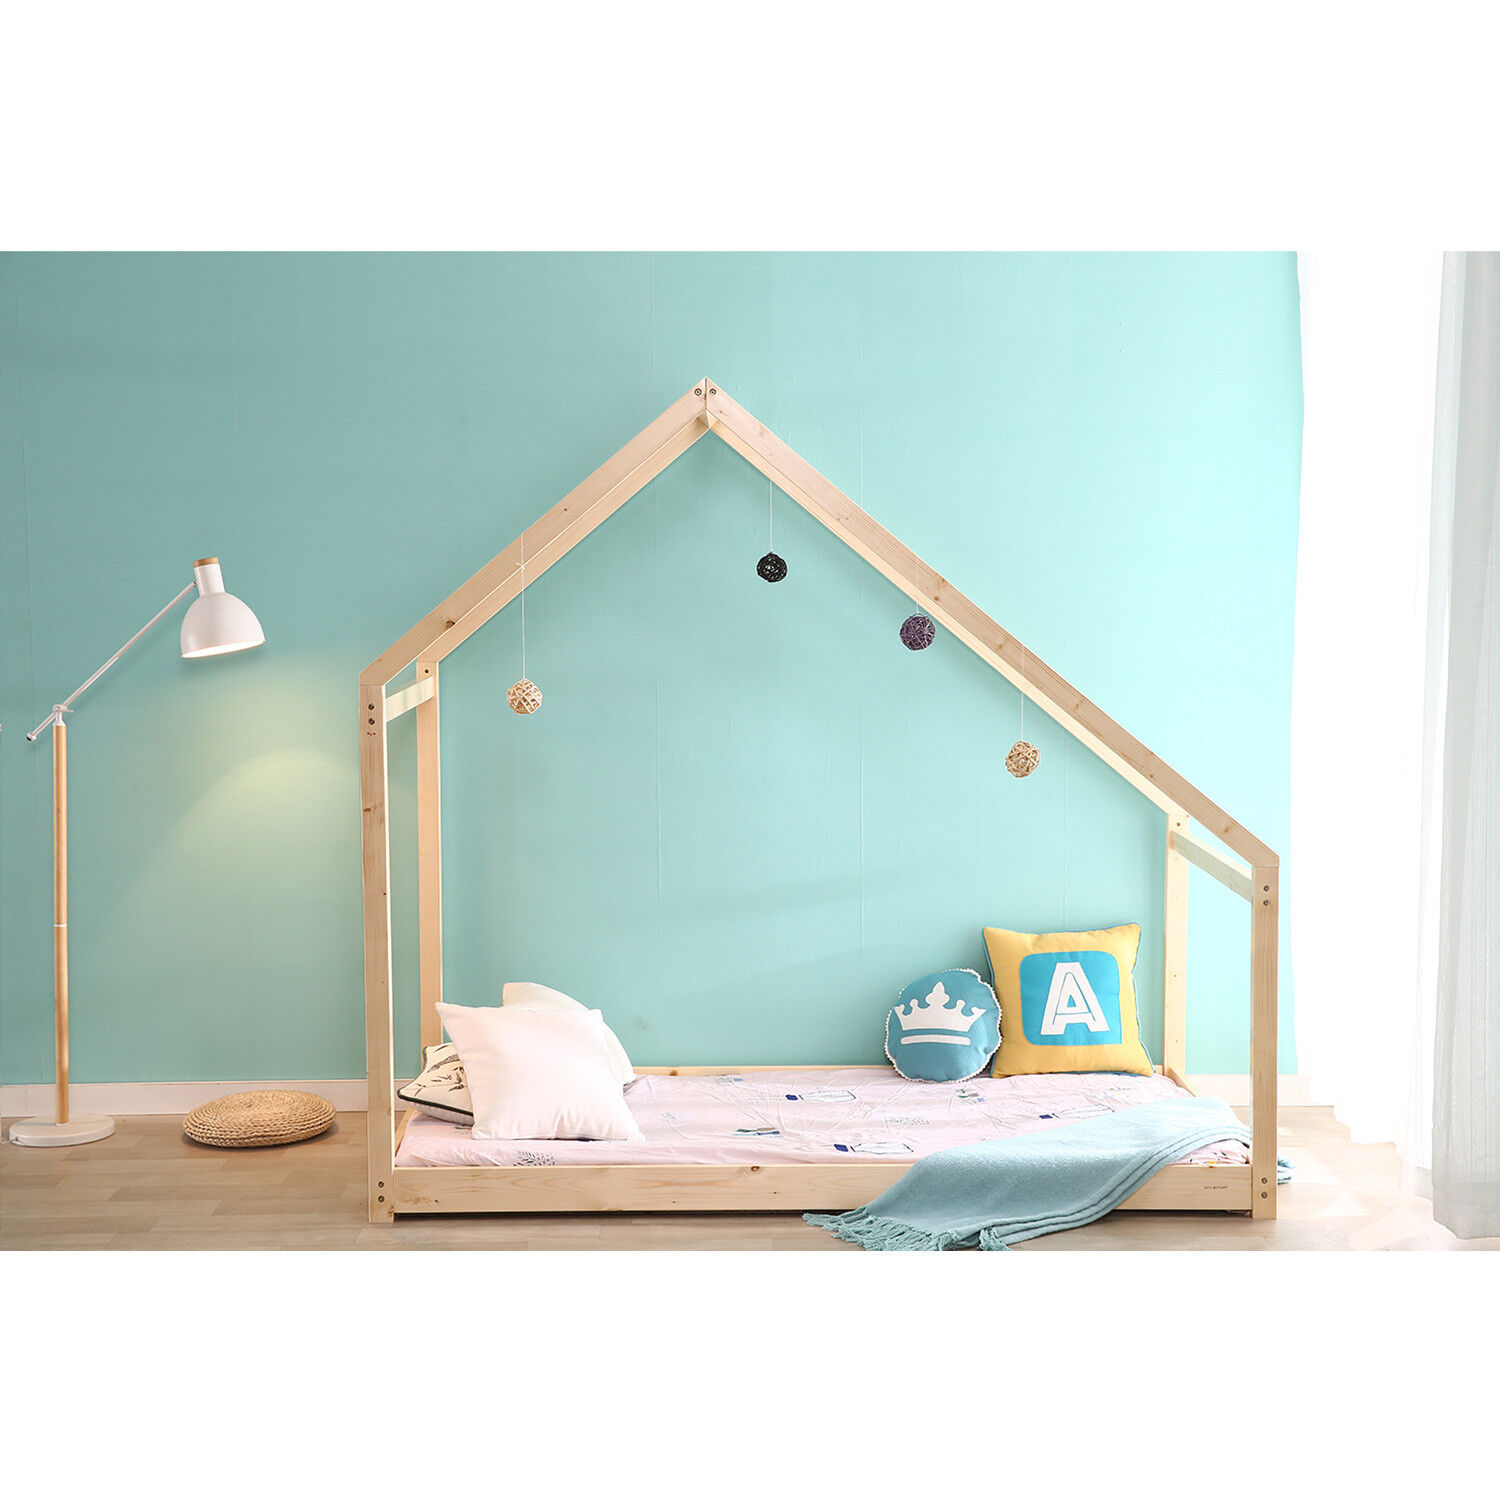 Details about Children House Frame Bed Tent Wood Kids Floor Bed Bedroom  Furniture Baby Safe